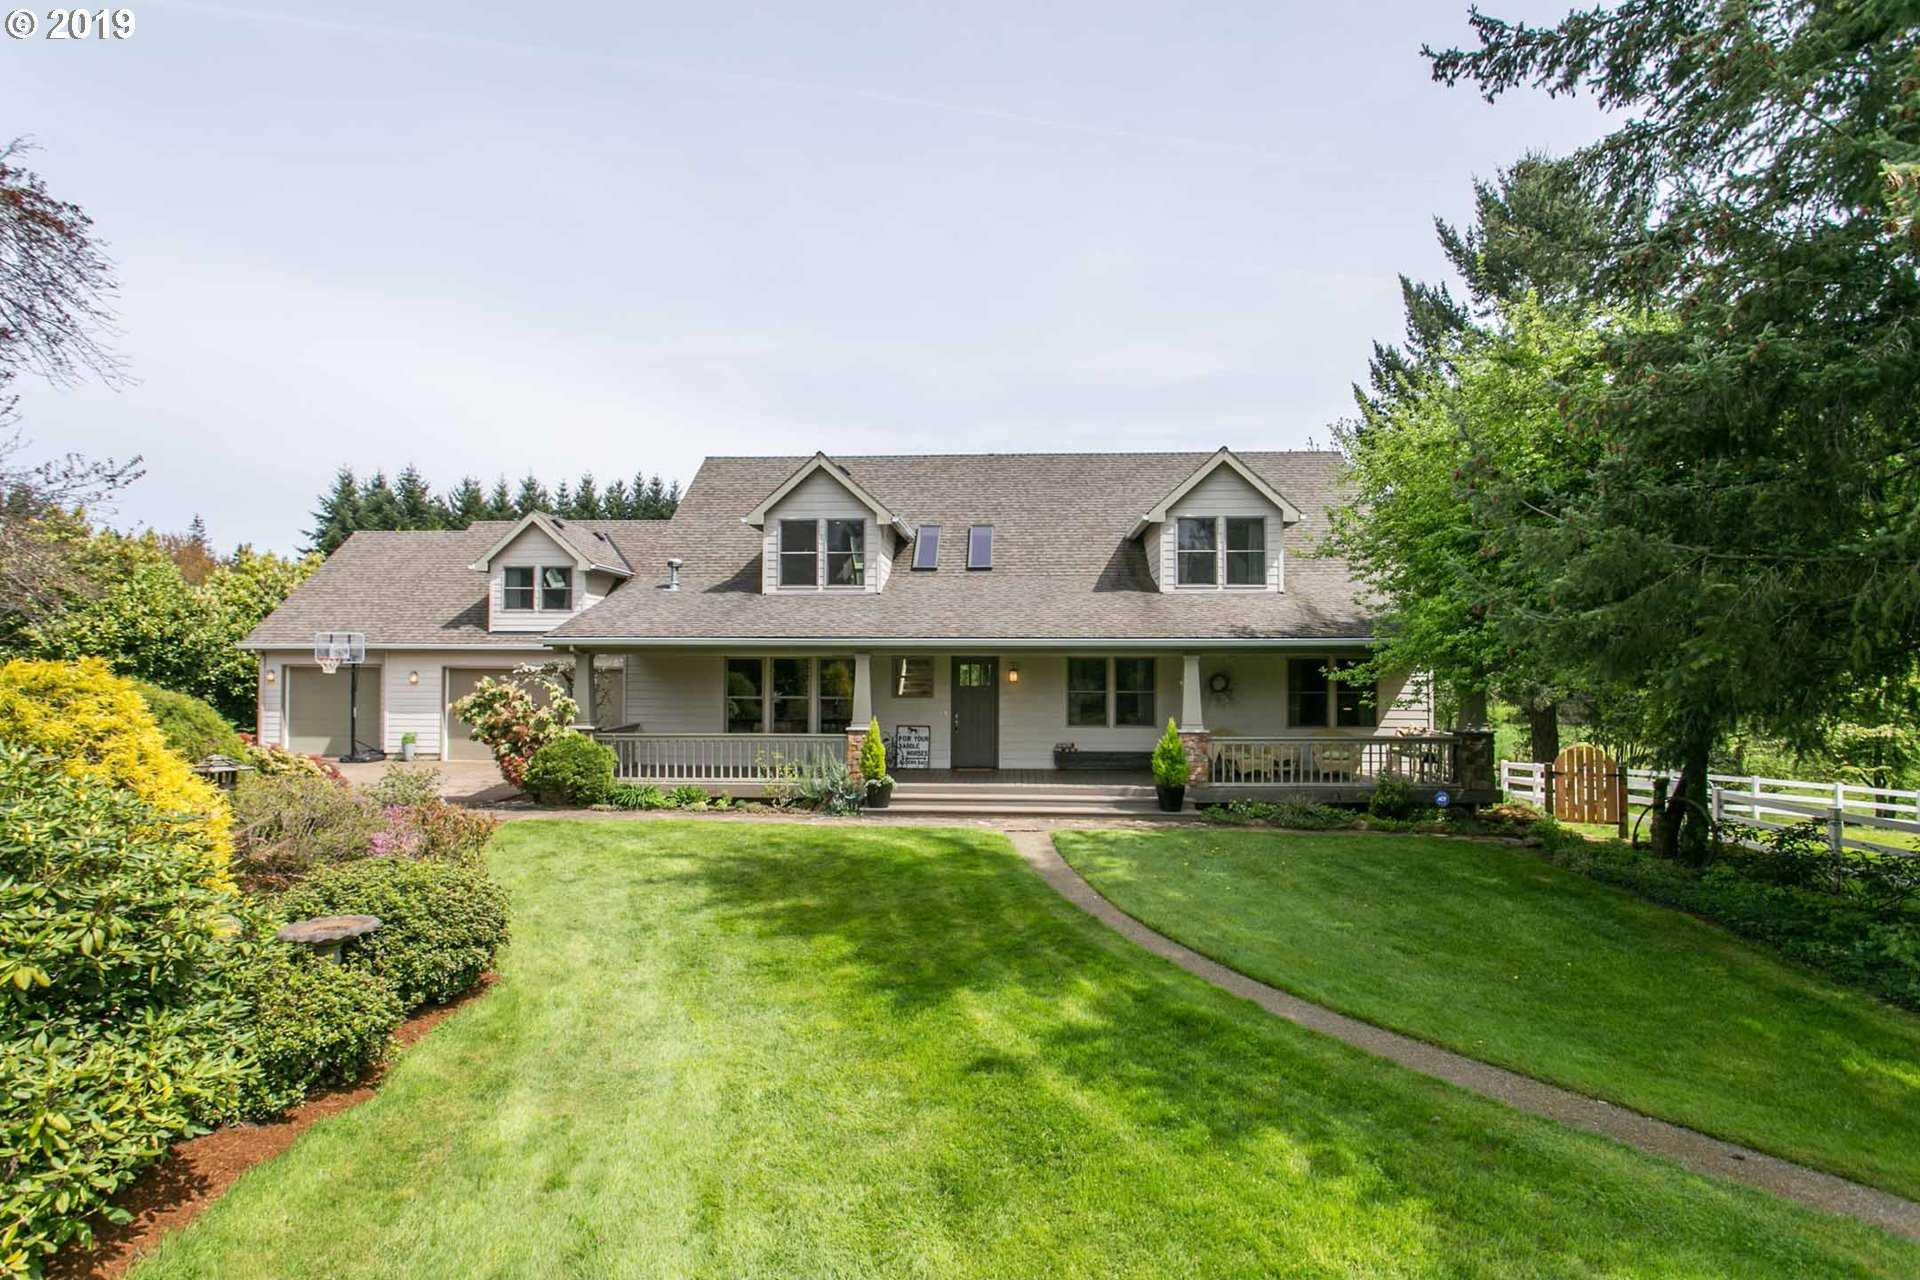 $1,371,000 - 4Br/4Ba -  for Sale in Oregon City